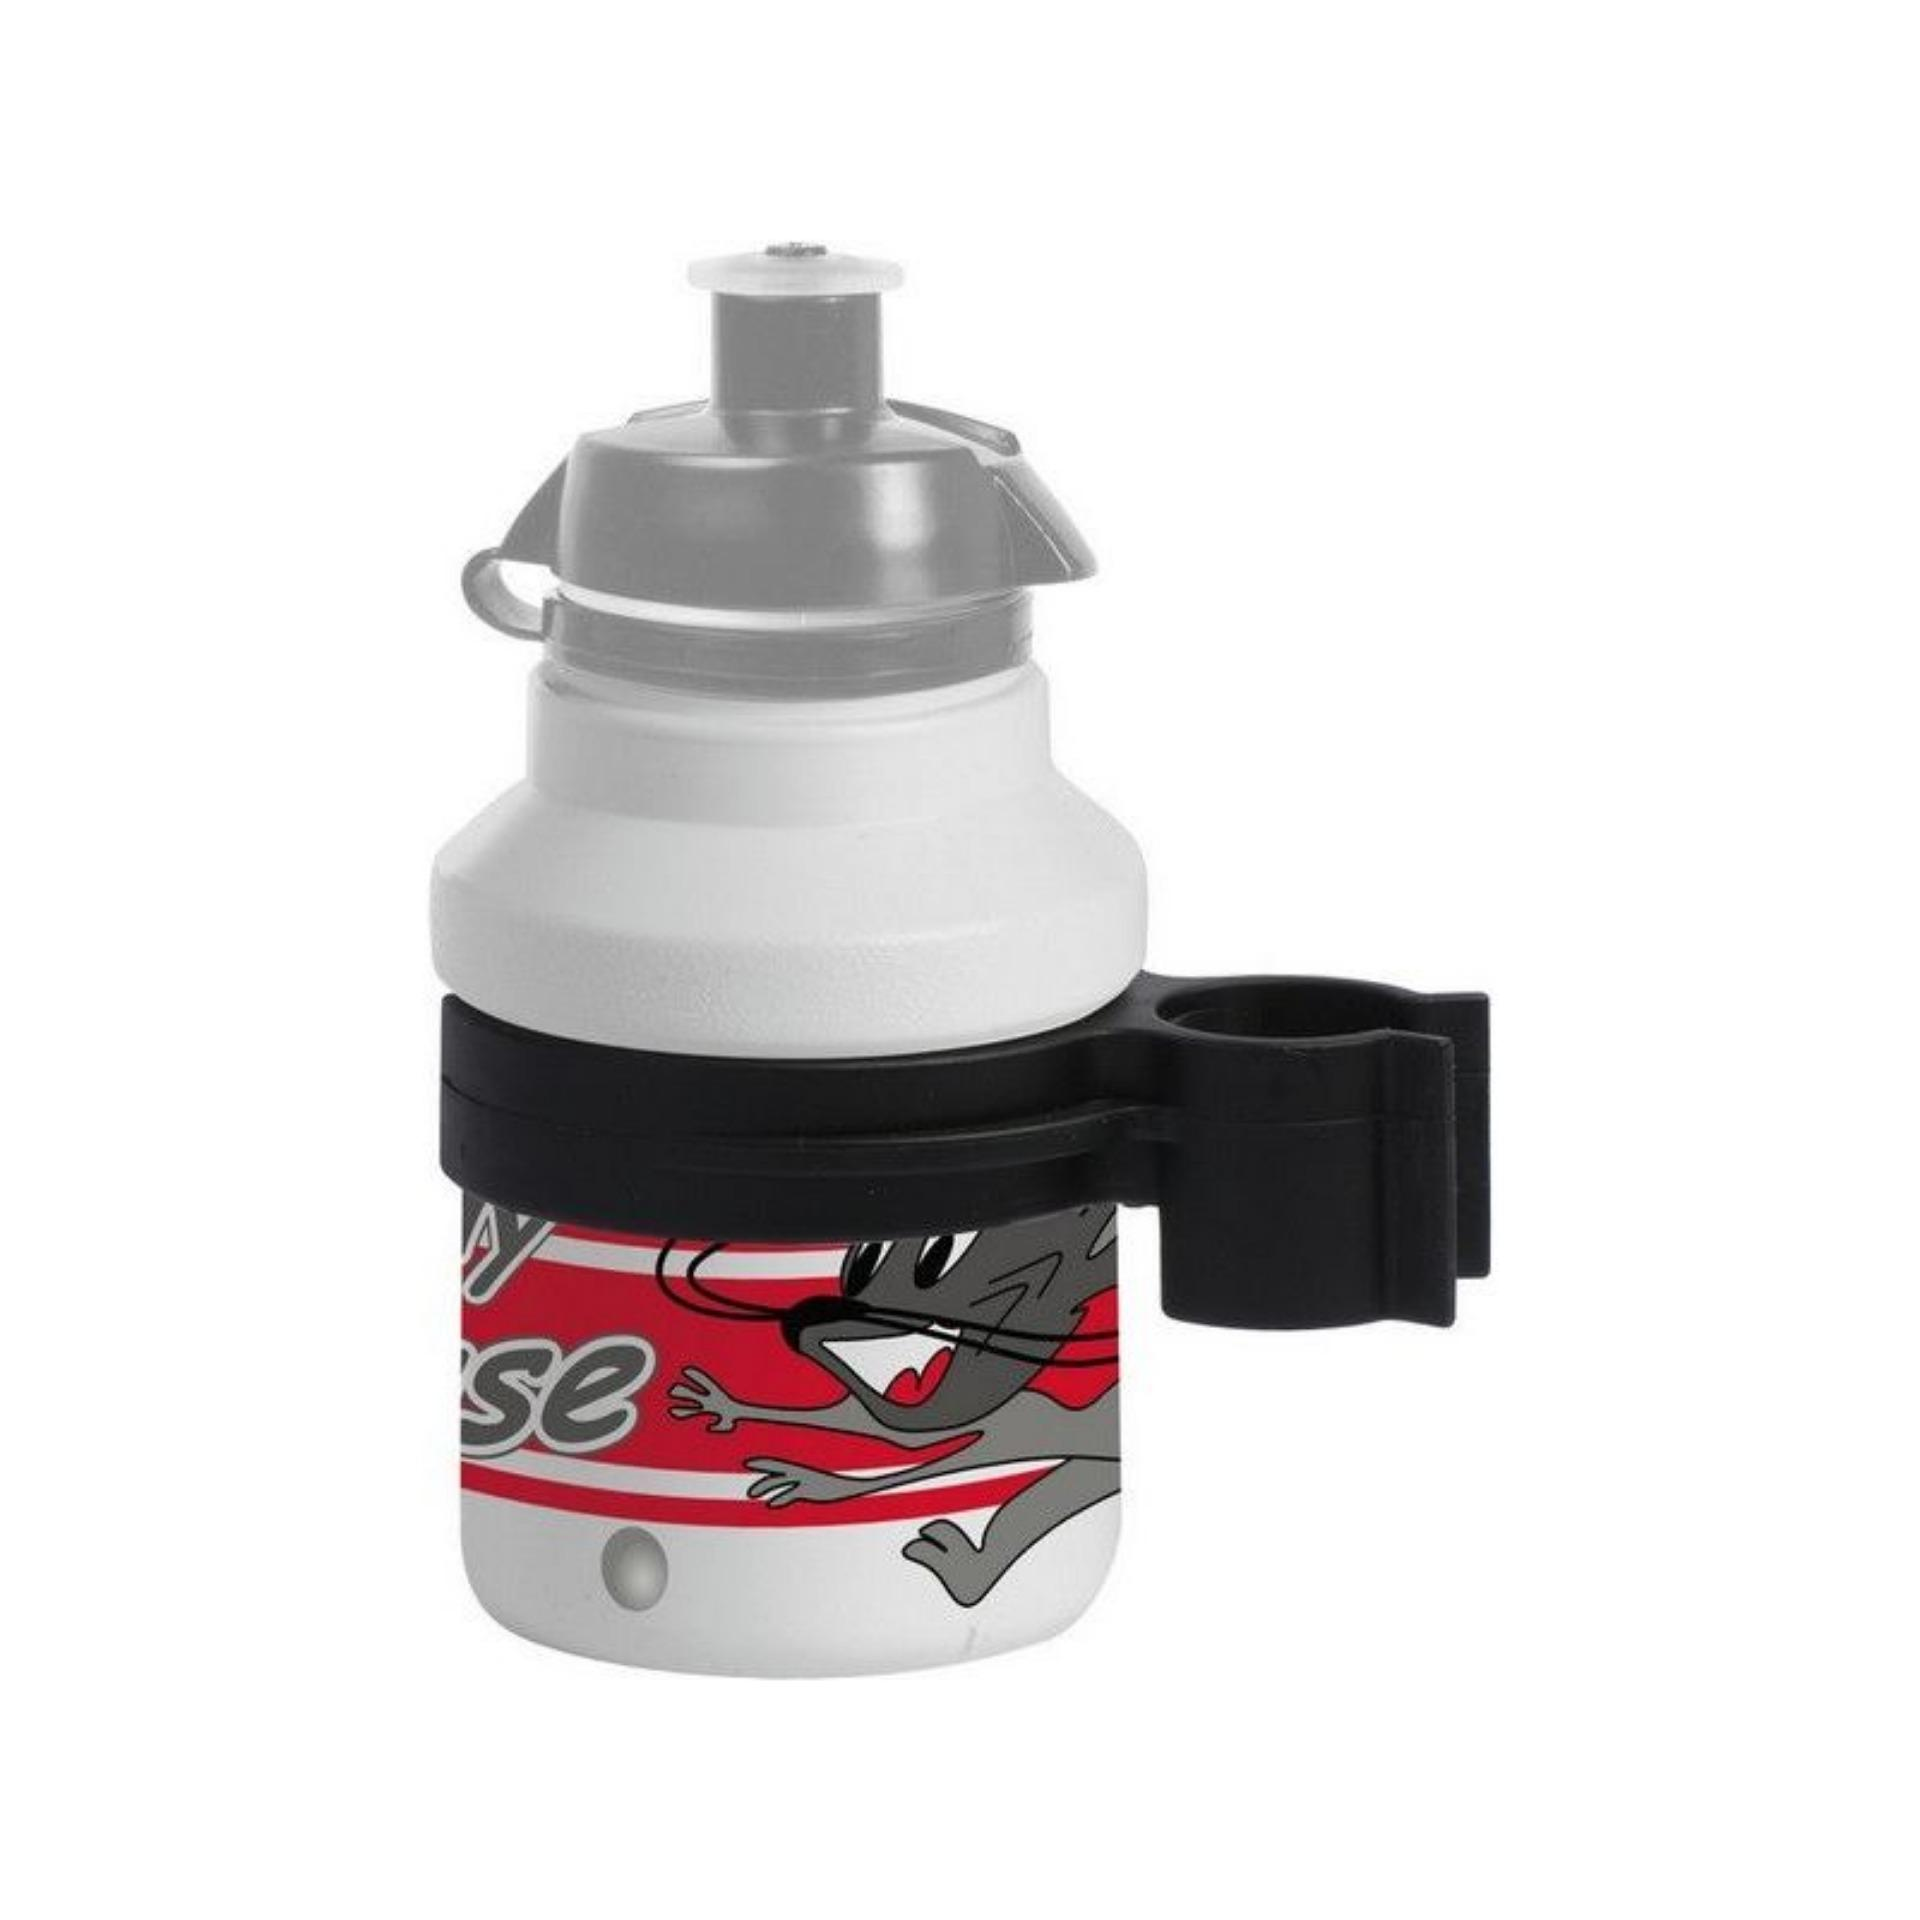 Botol Minum Polisport Speedy Mouse 300ML With Holder - Red